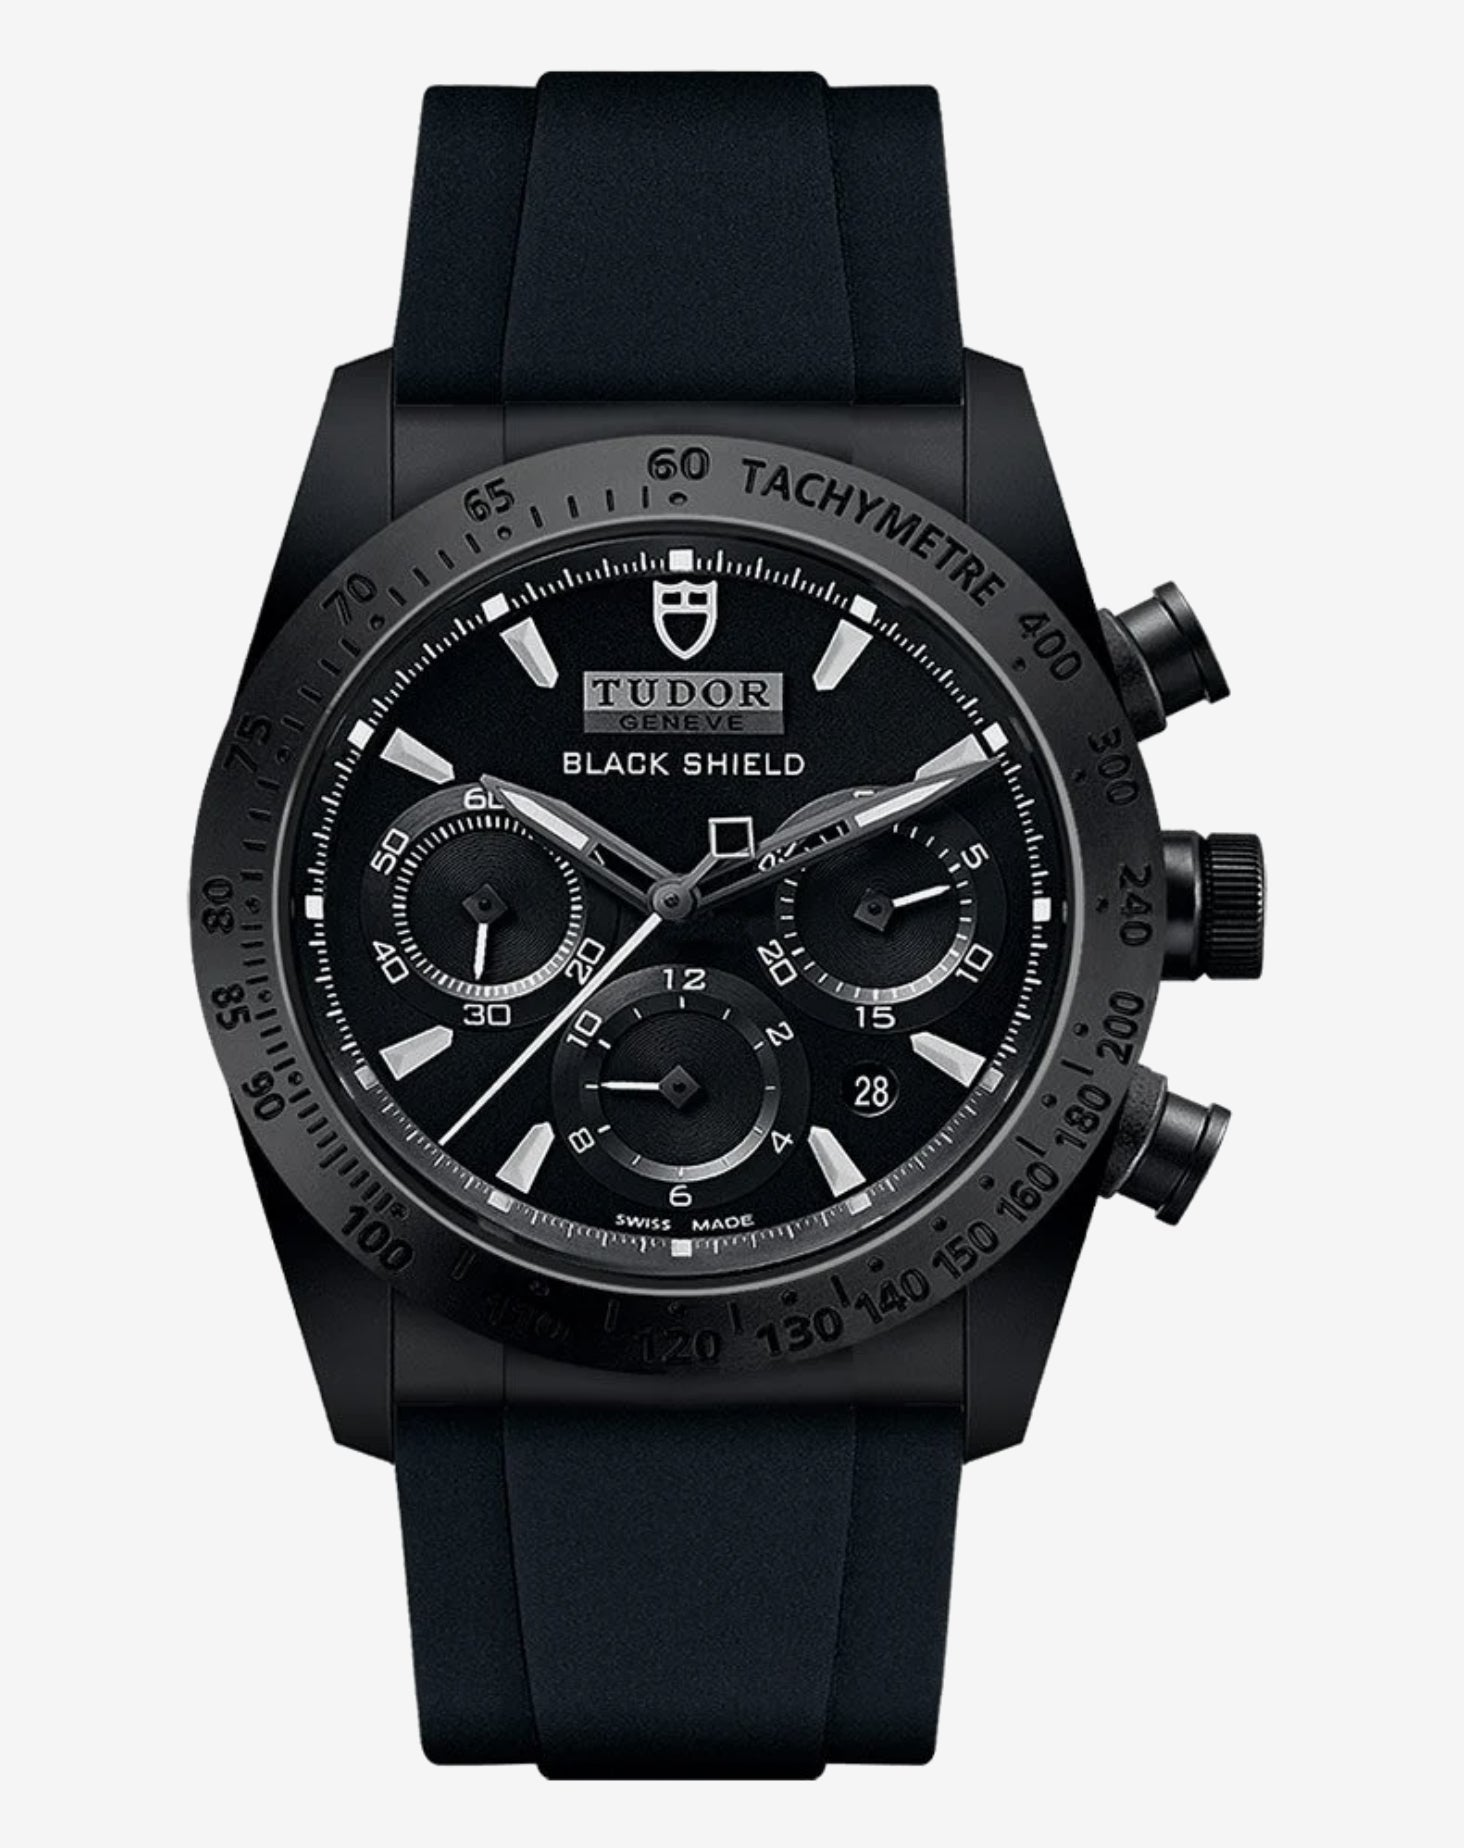 Tudor Fastrider M4200CN-0018 Black Shield Chronograph Ceramic Rubber 42mm